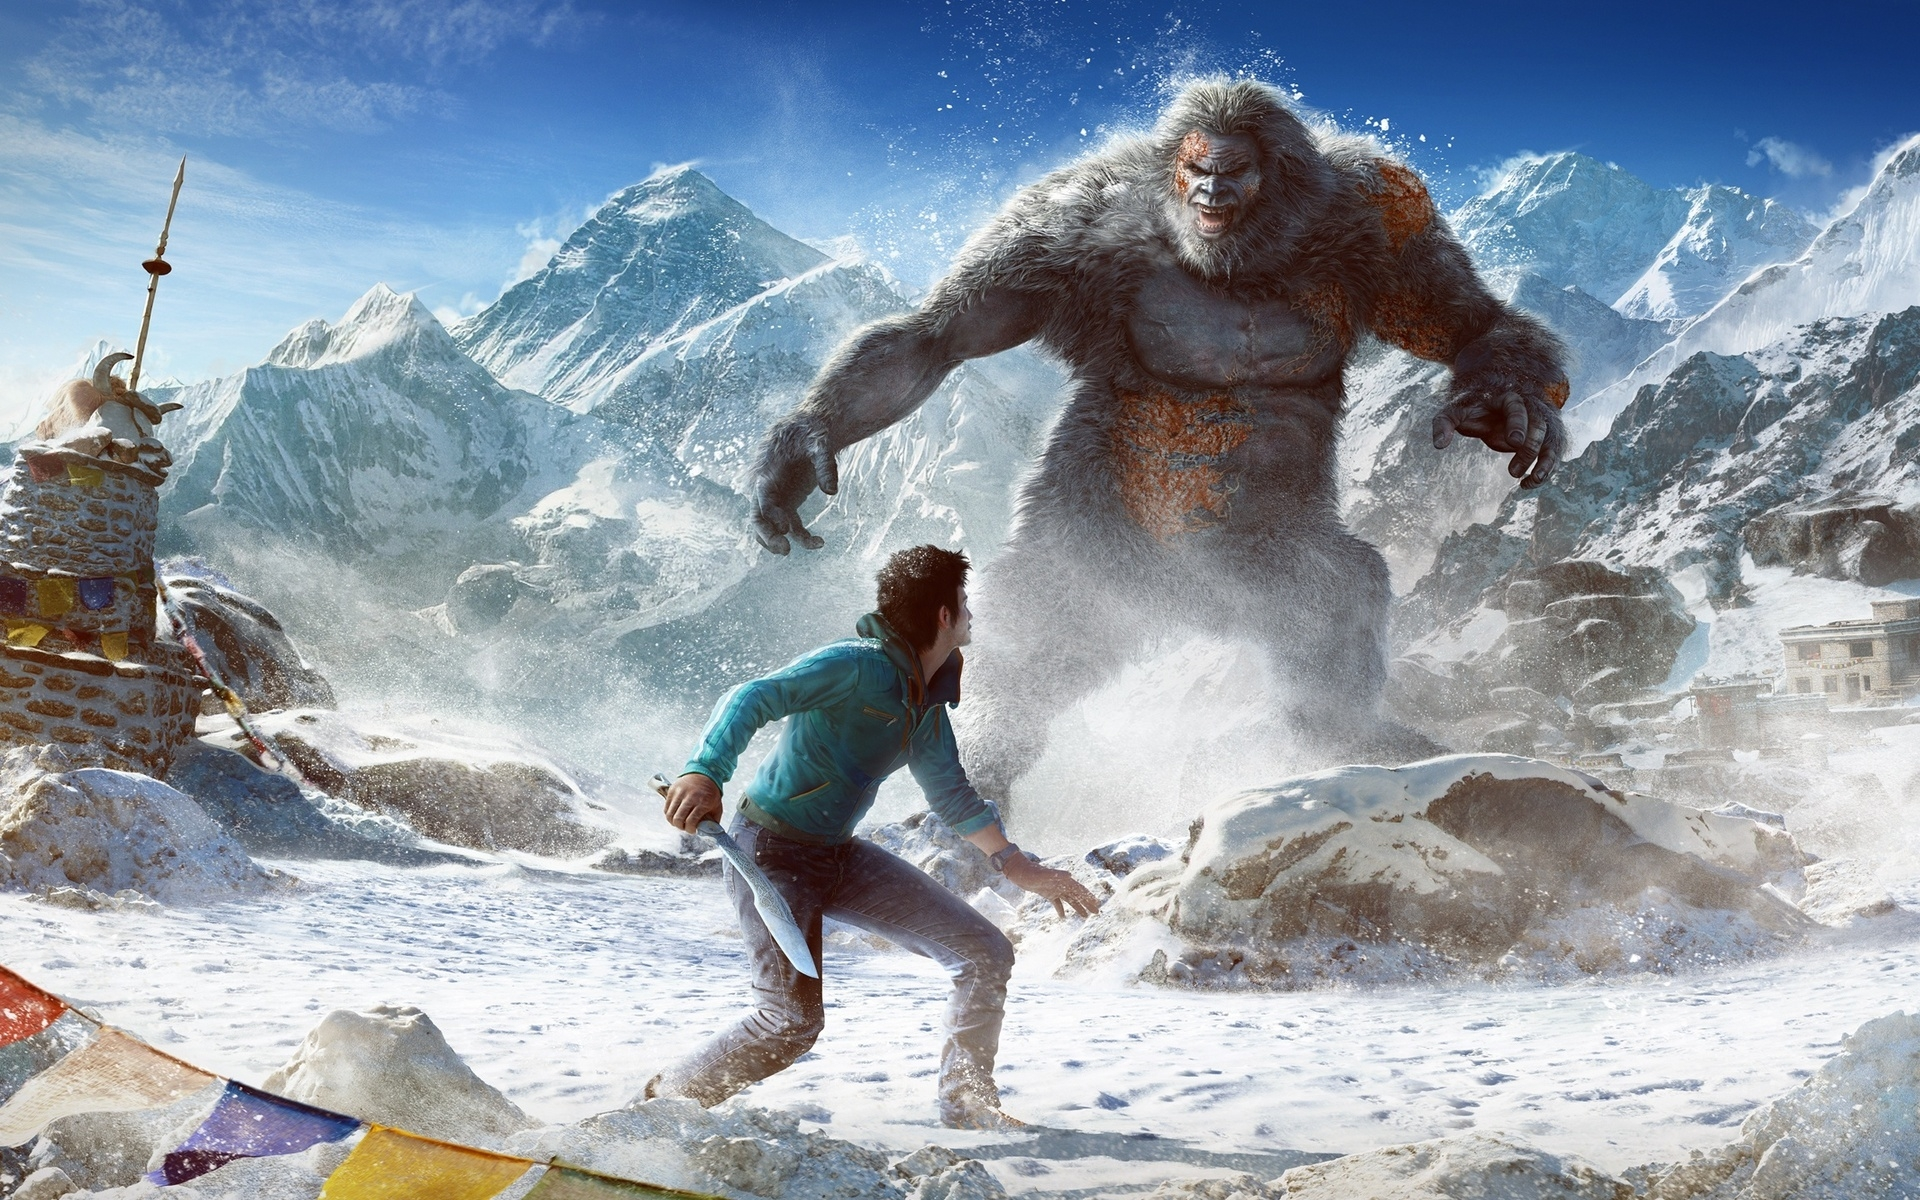 Far Cry 4 Valley Of The Yetis Hd Wallpaper Wallpaperfx